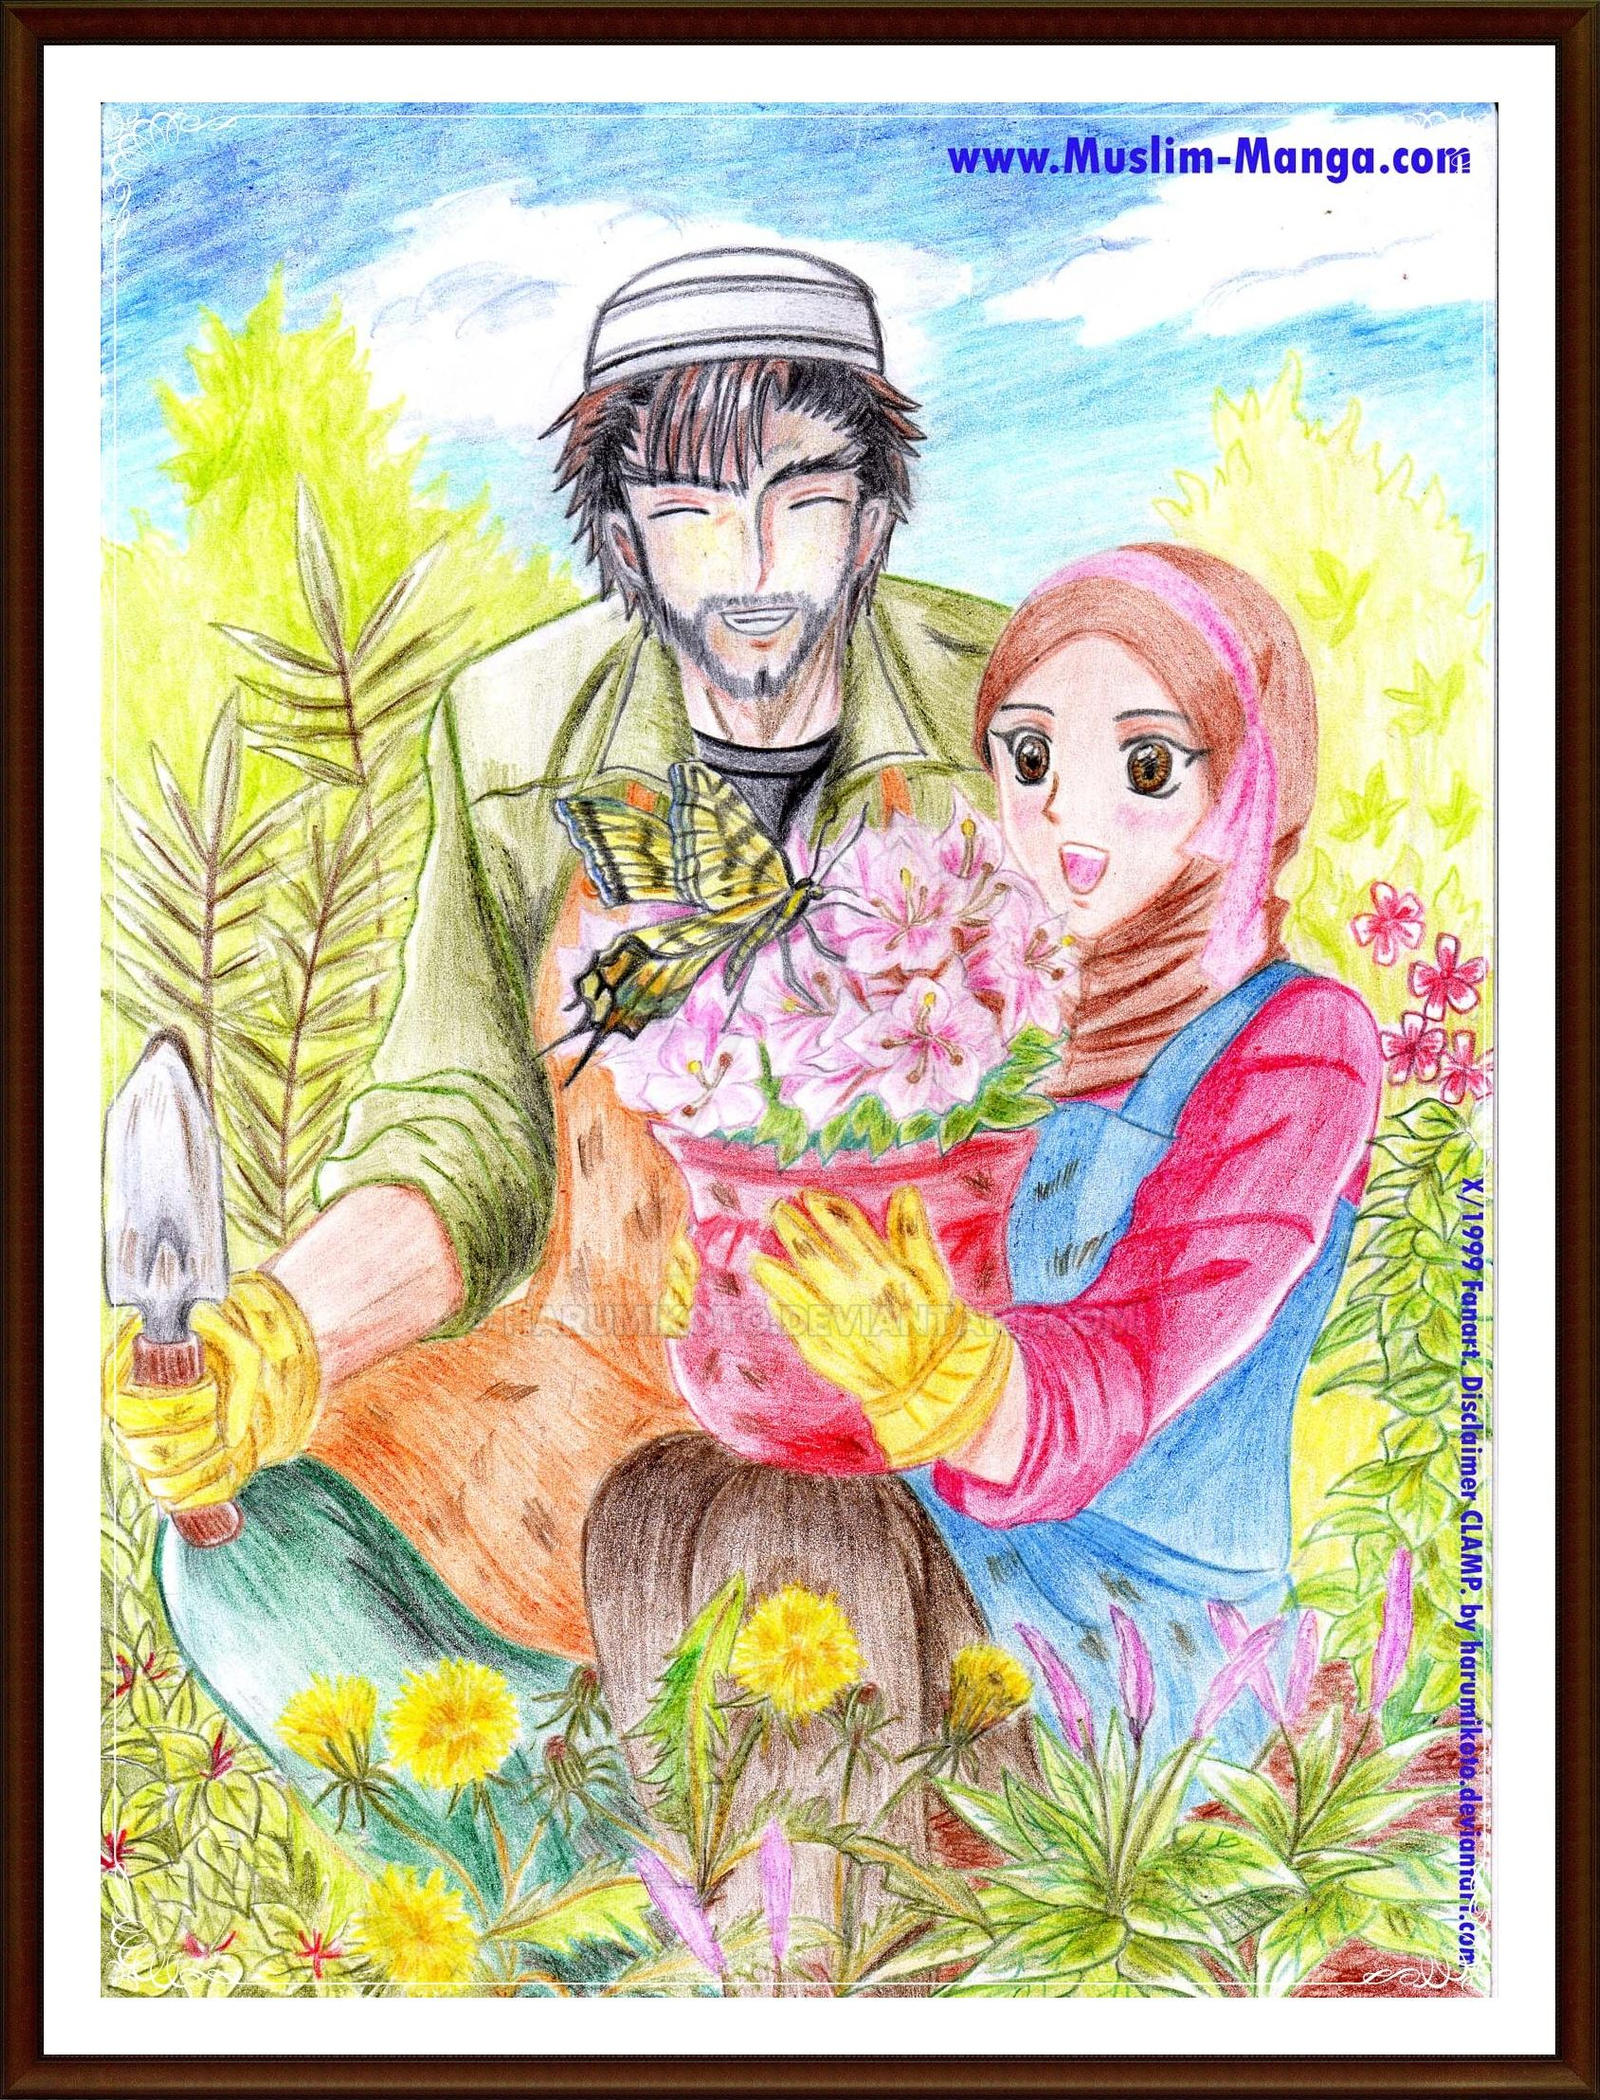 Gift from Nature (CLAMP's X/1999 Muslim Fanart)